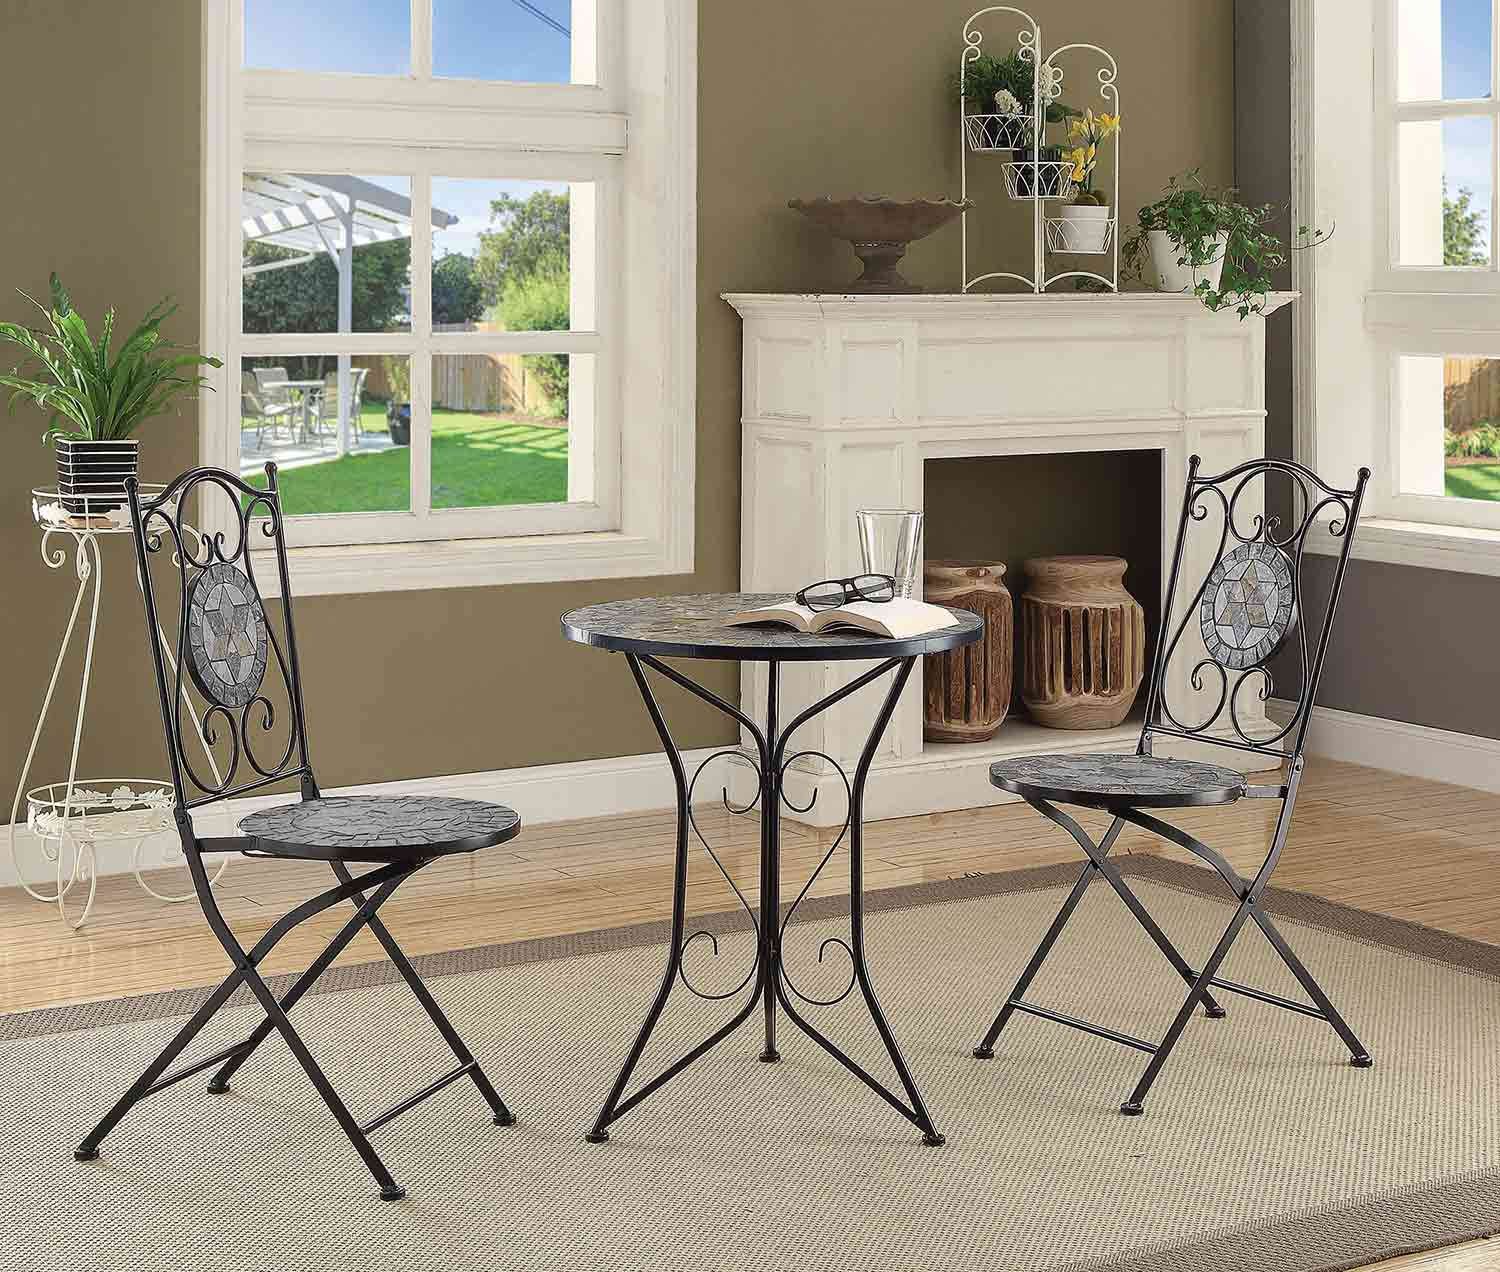 Coaster 104163 3 PC Dining Set With Mosaic Tiles   Multi Neutral